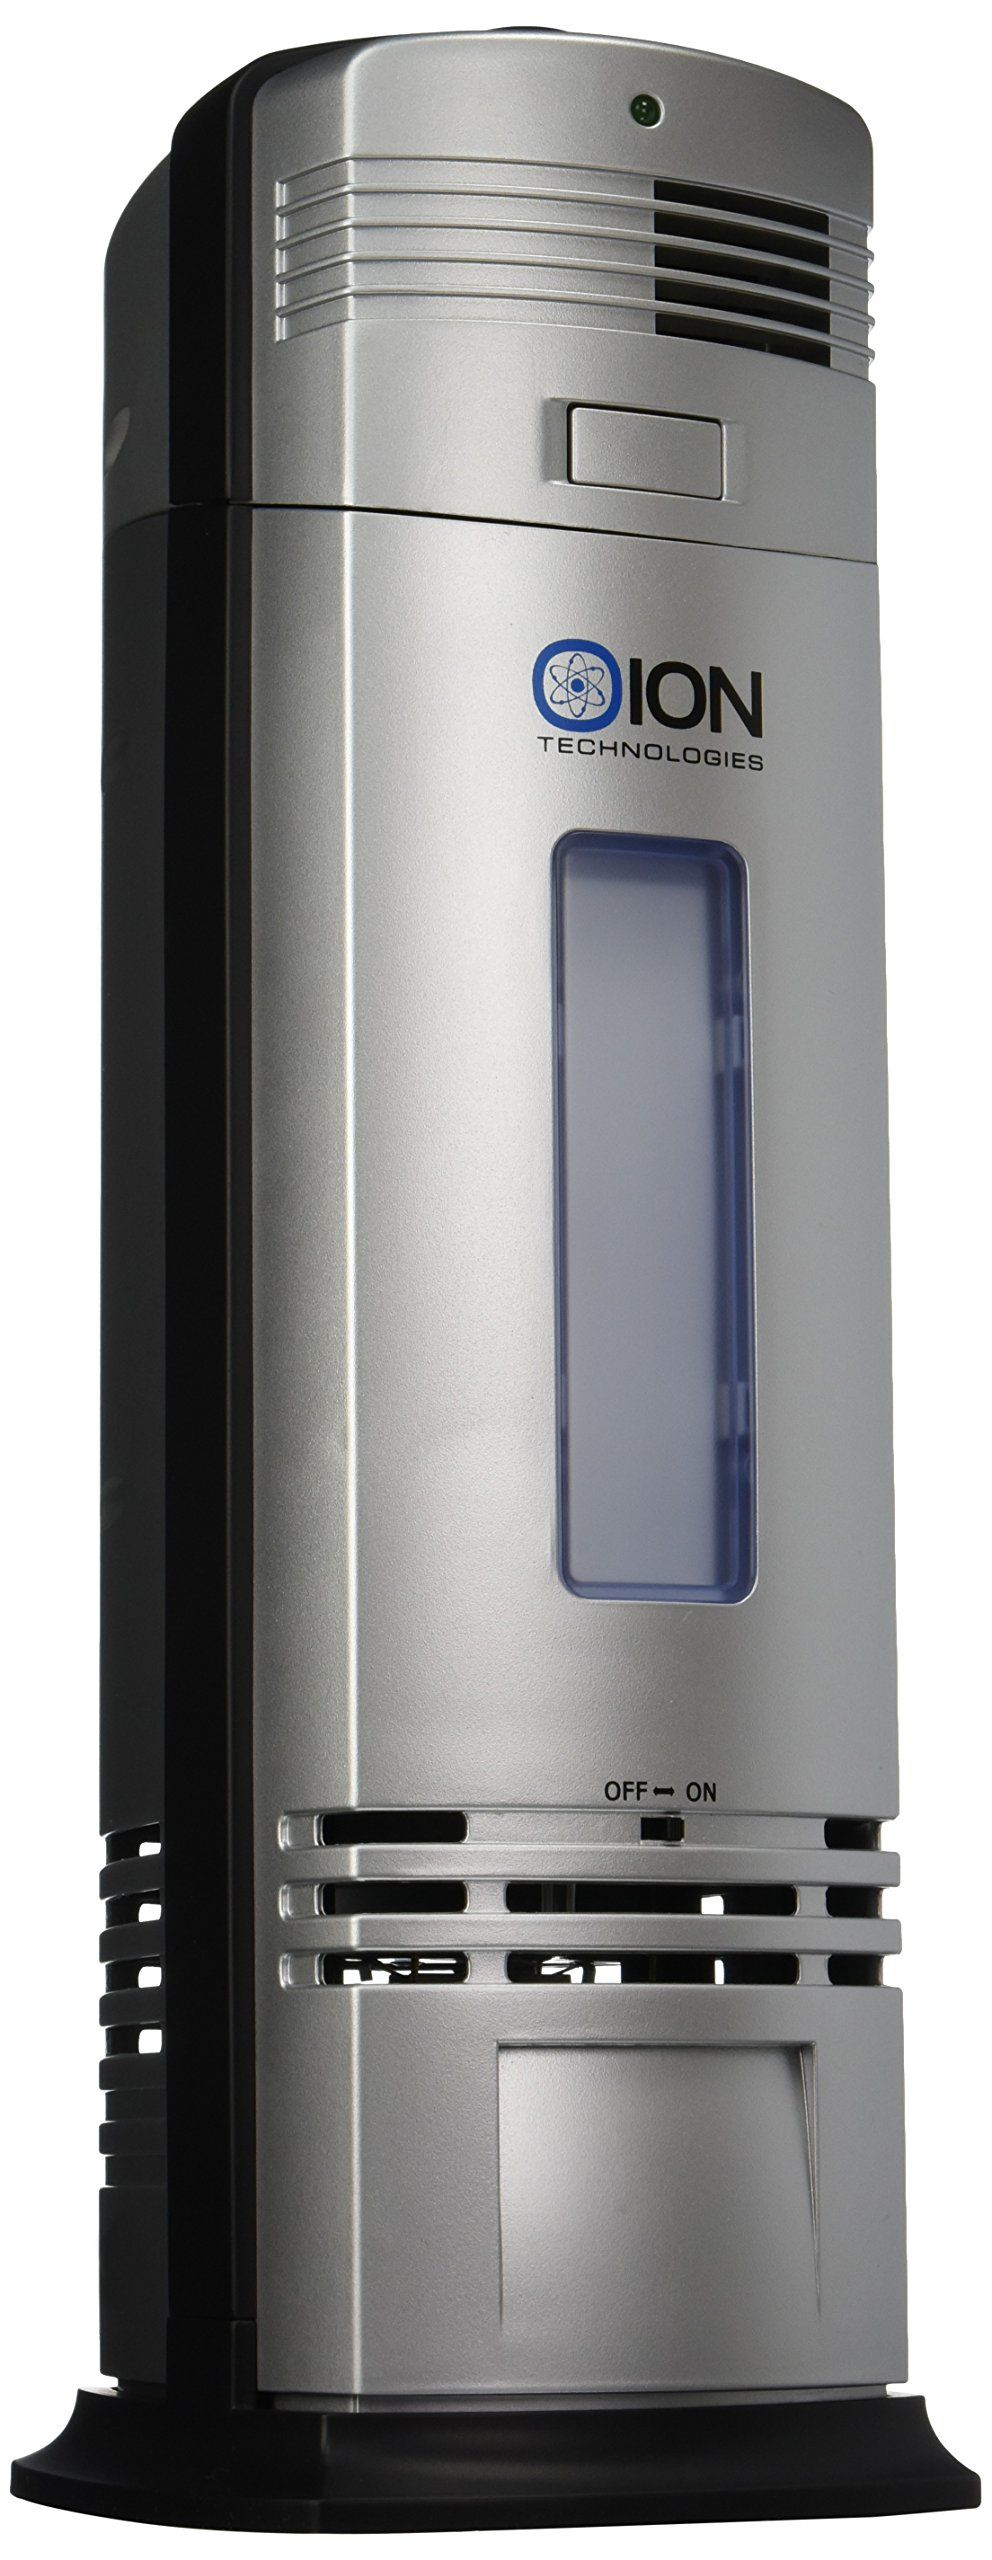 OION B1000 Permanent Filter Ionic Air Purifier Pro